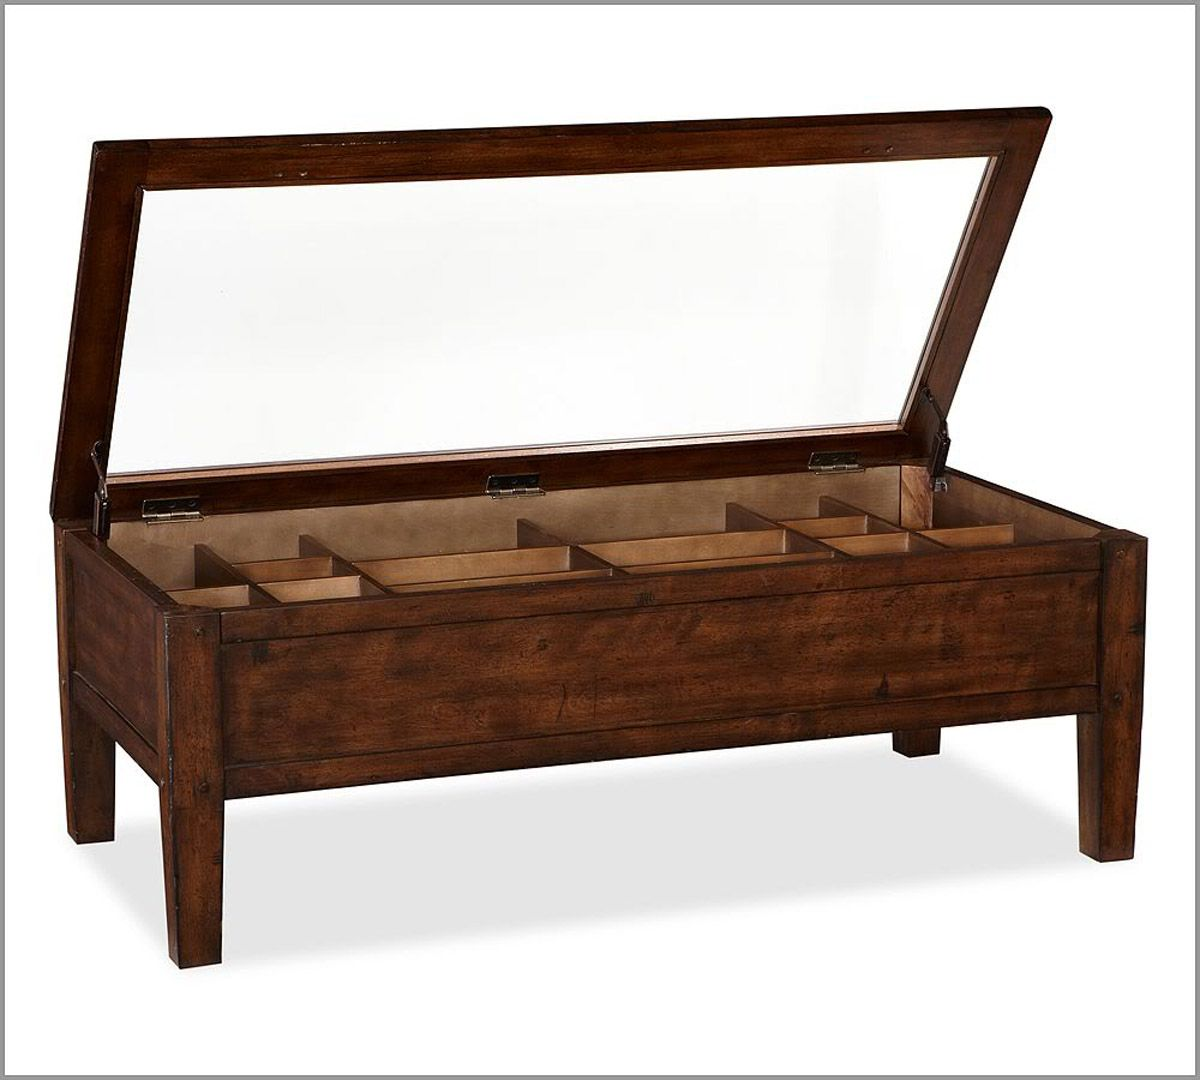 Pottery Barn Hyde Coffee Table Shadow Box Coffee Table Diy Shadow Box Coffee Table Diy